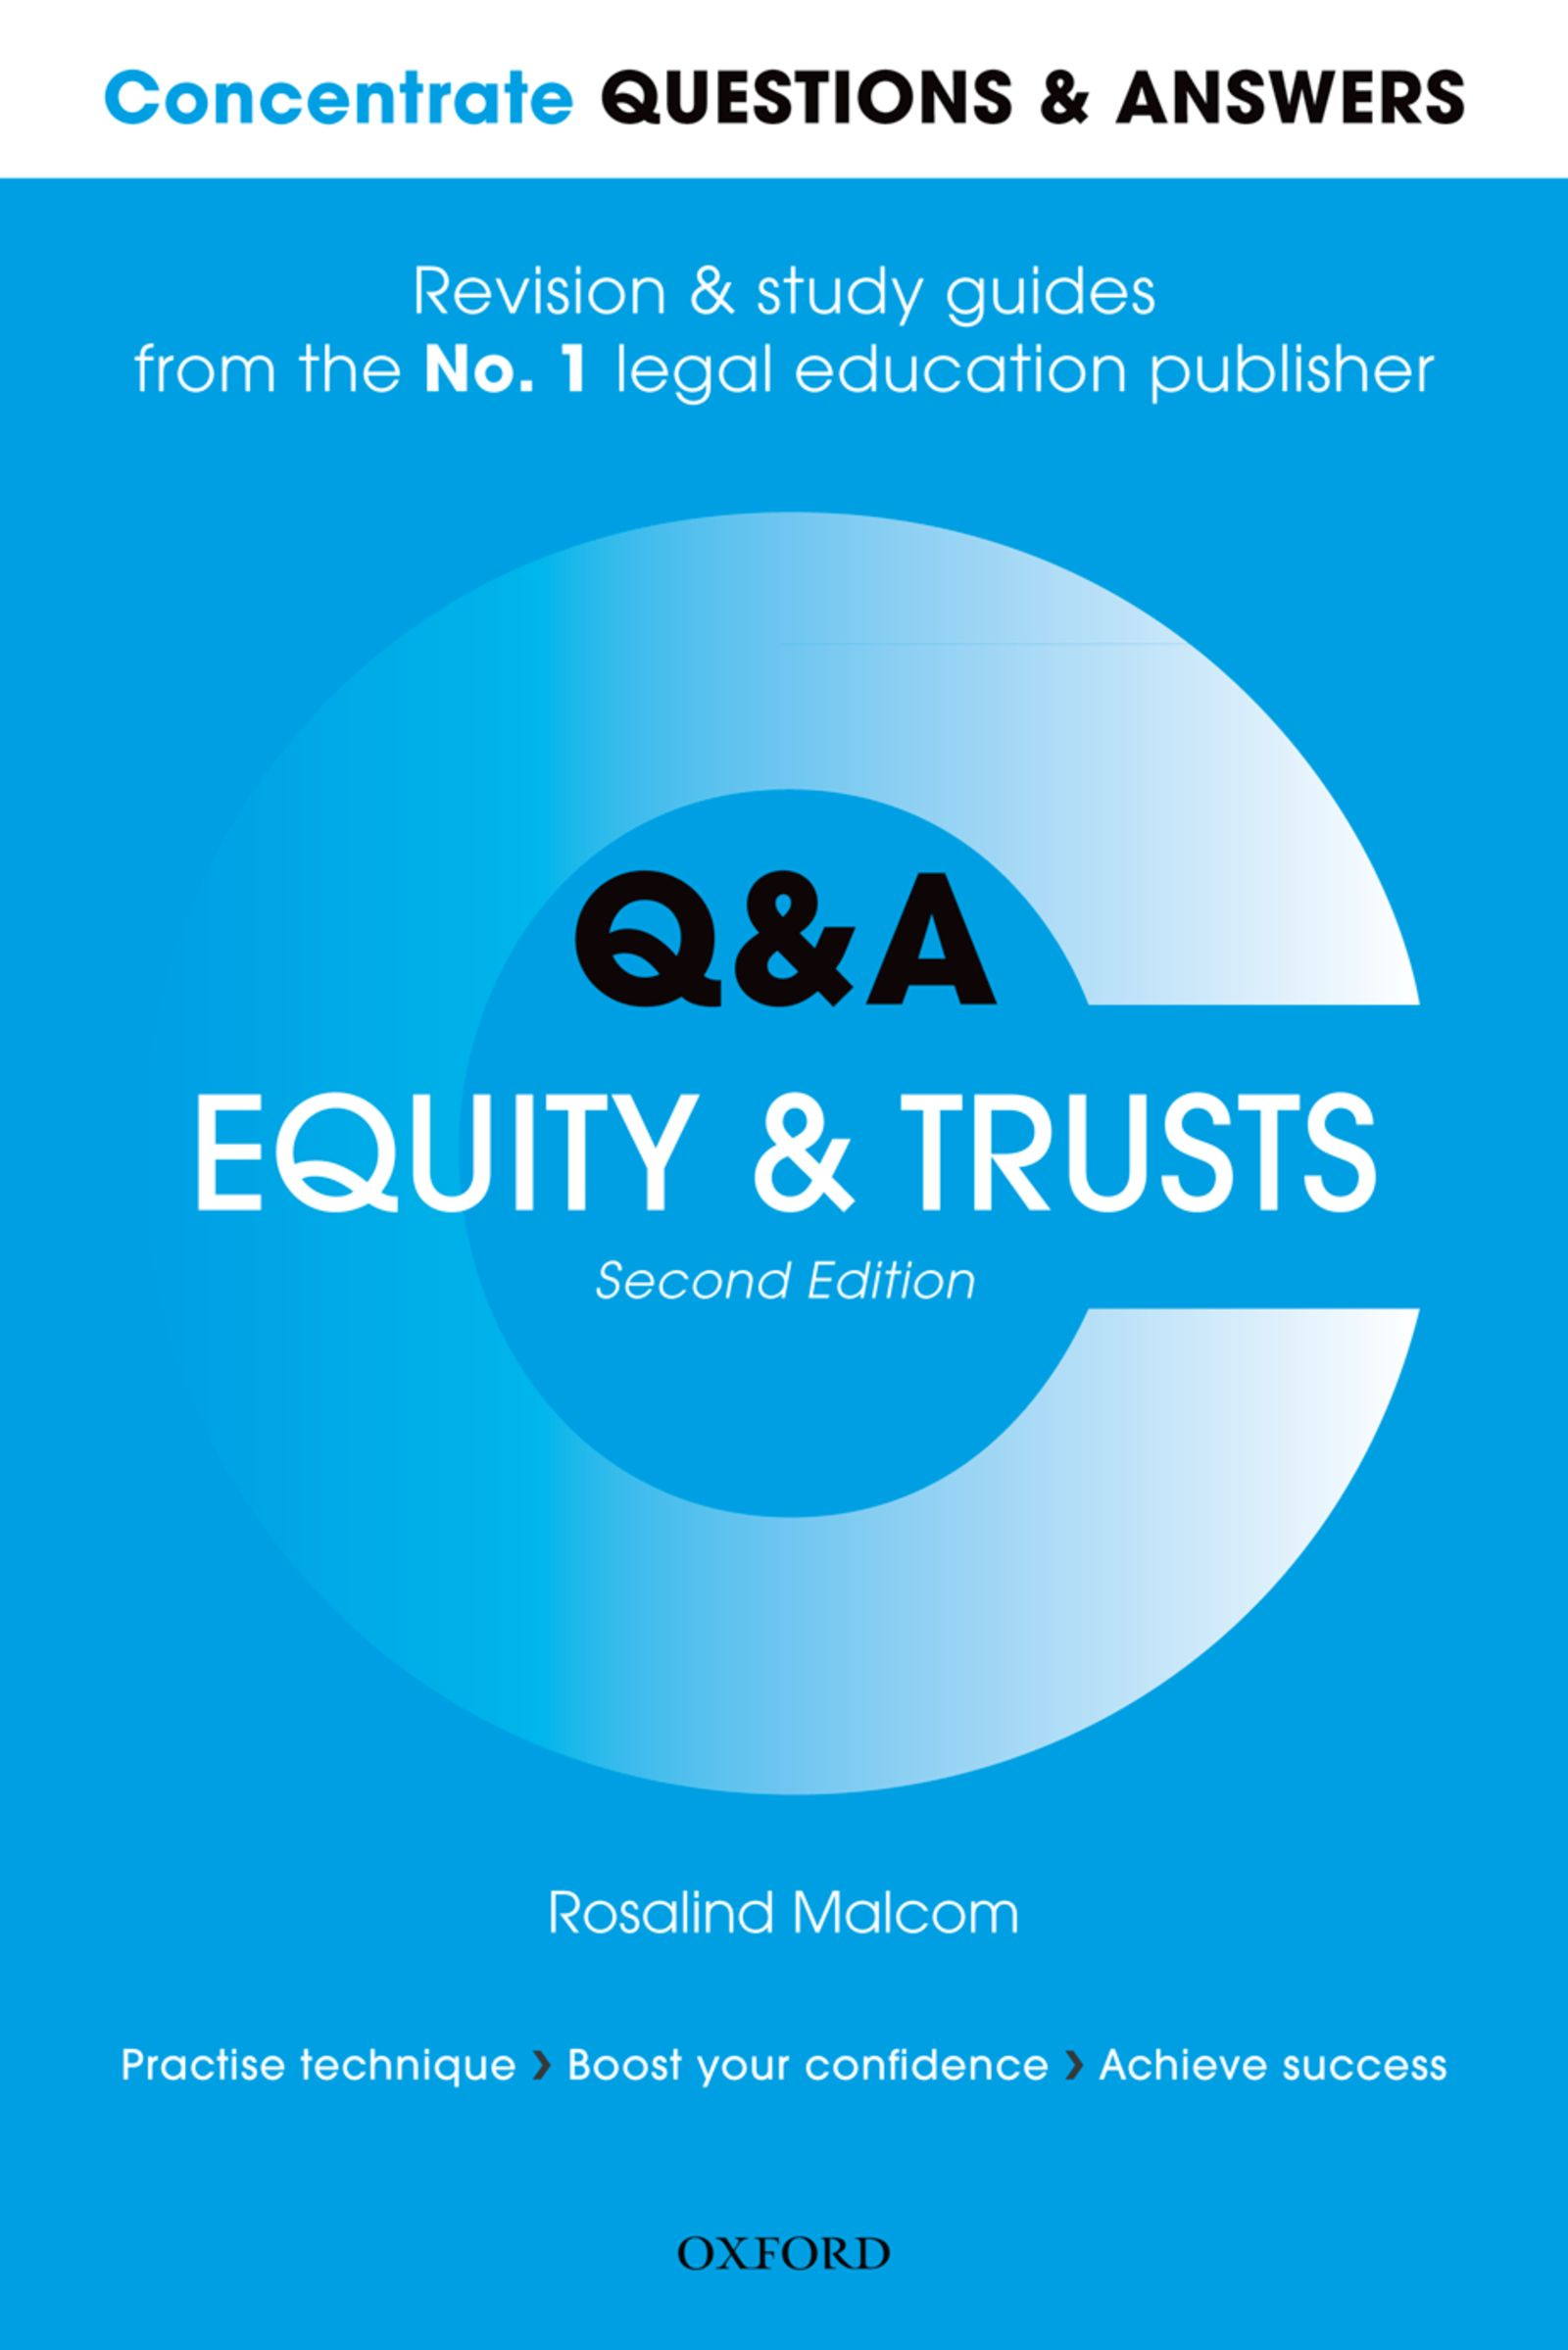 Q&A Equity & Trusts 2e Student resources